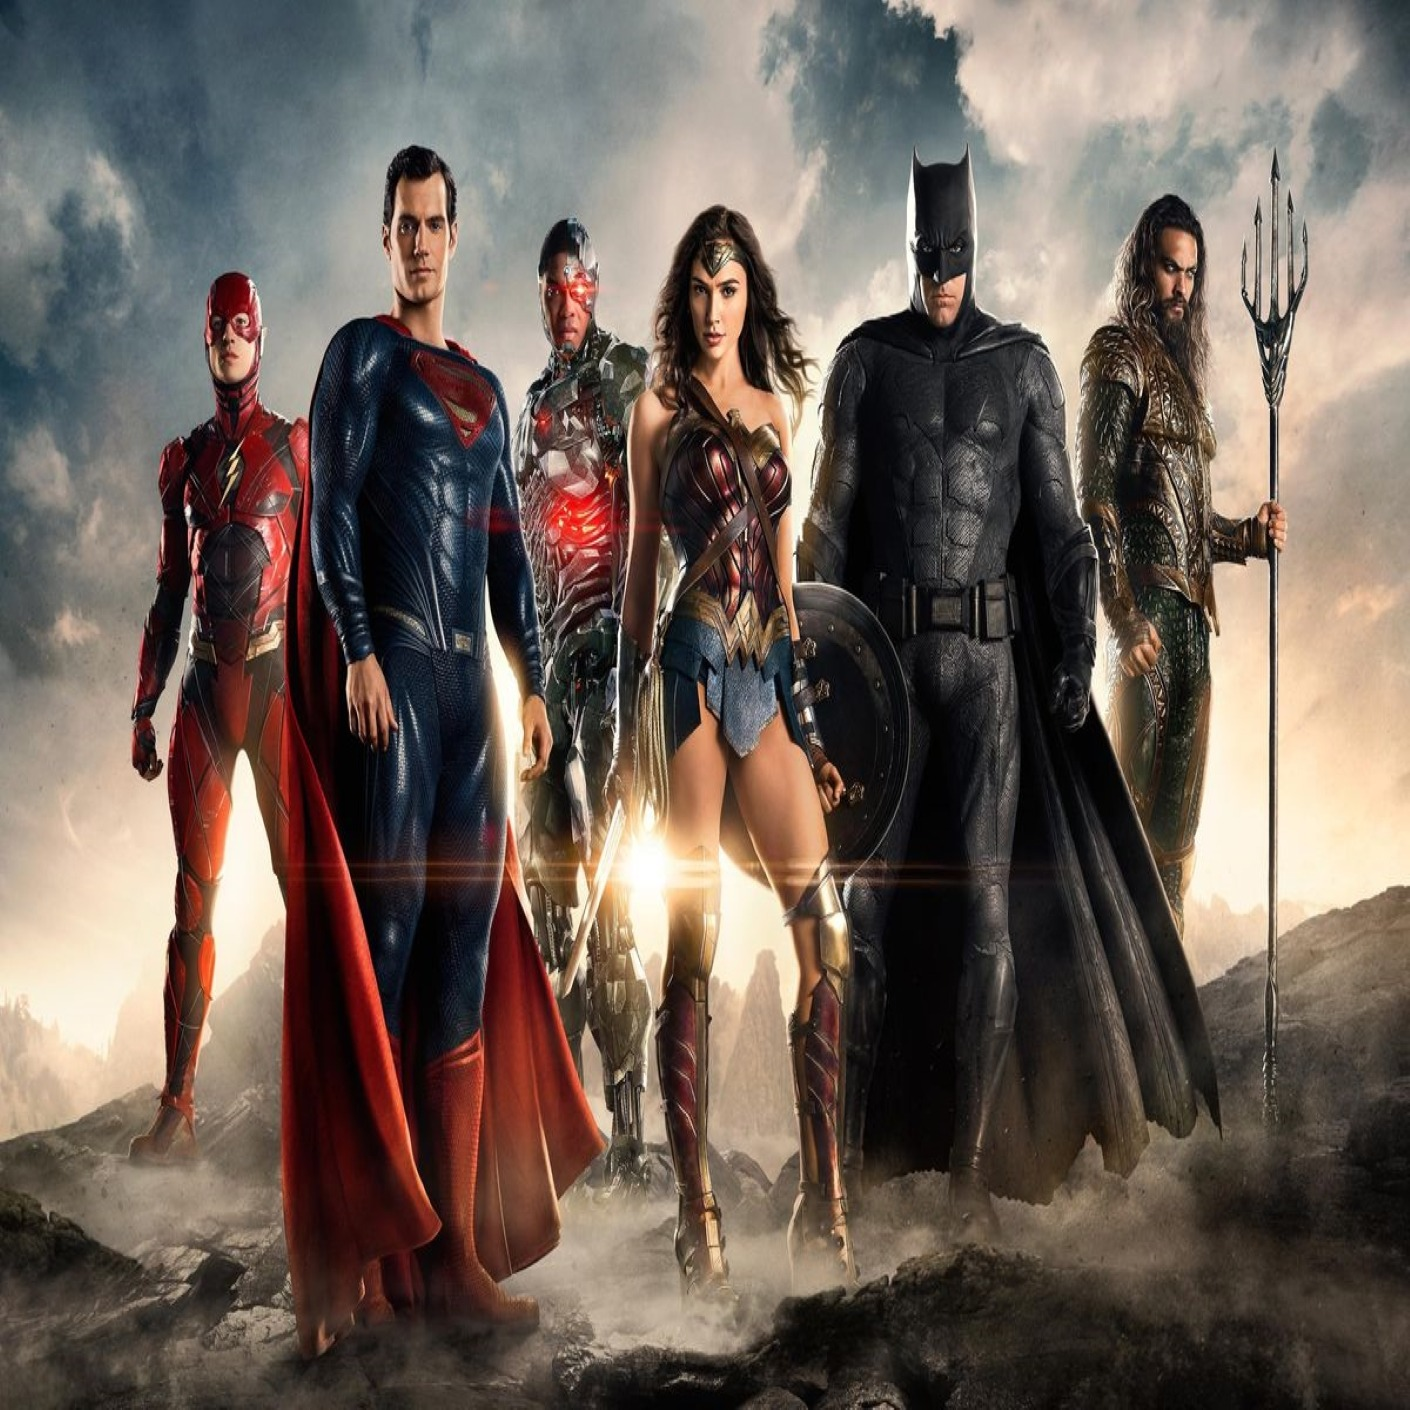 GVN Presents: They Called This a Movie - Justice League (2017)